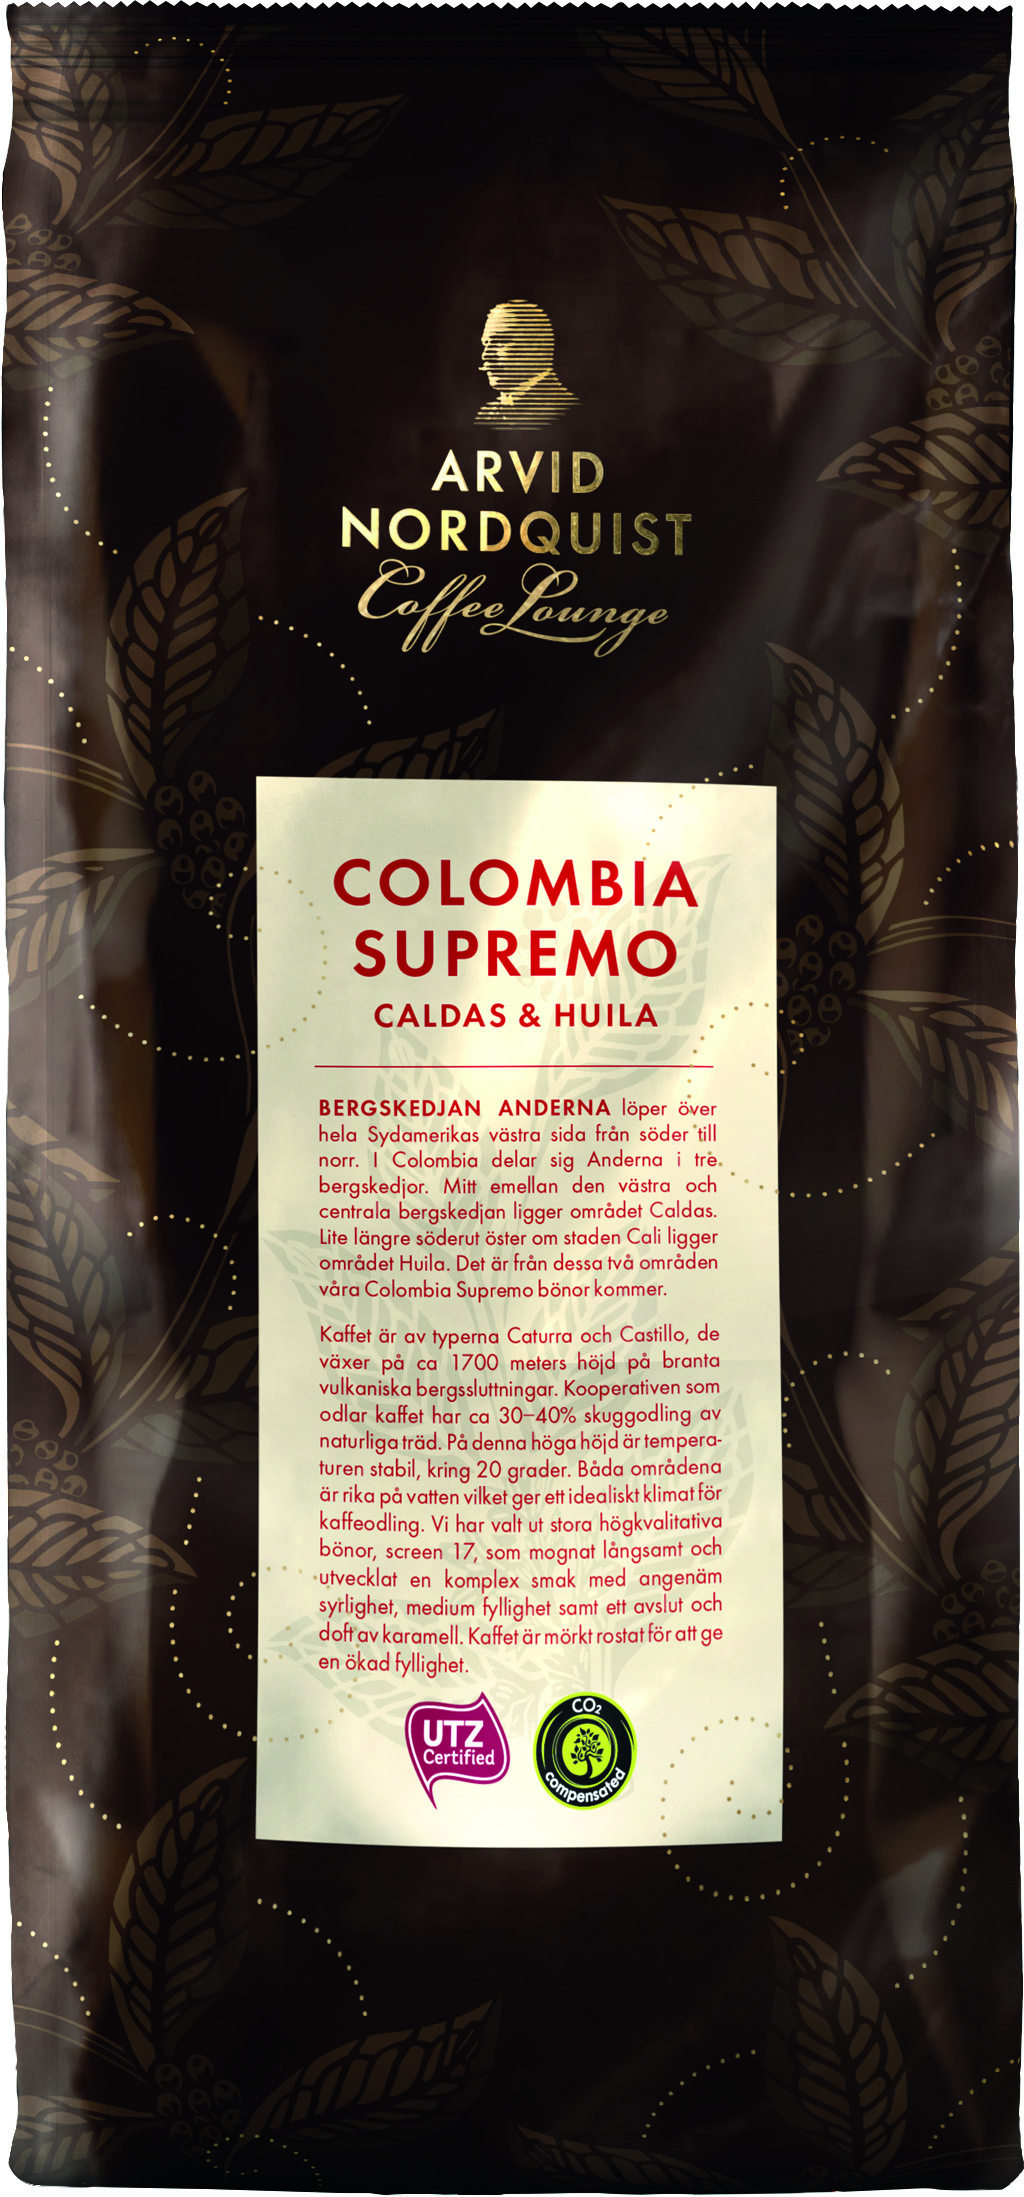 colombia_500g_packshot.jpg